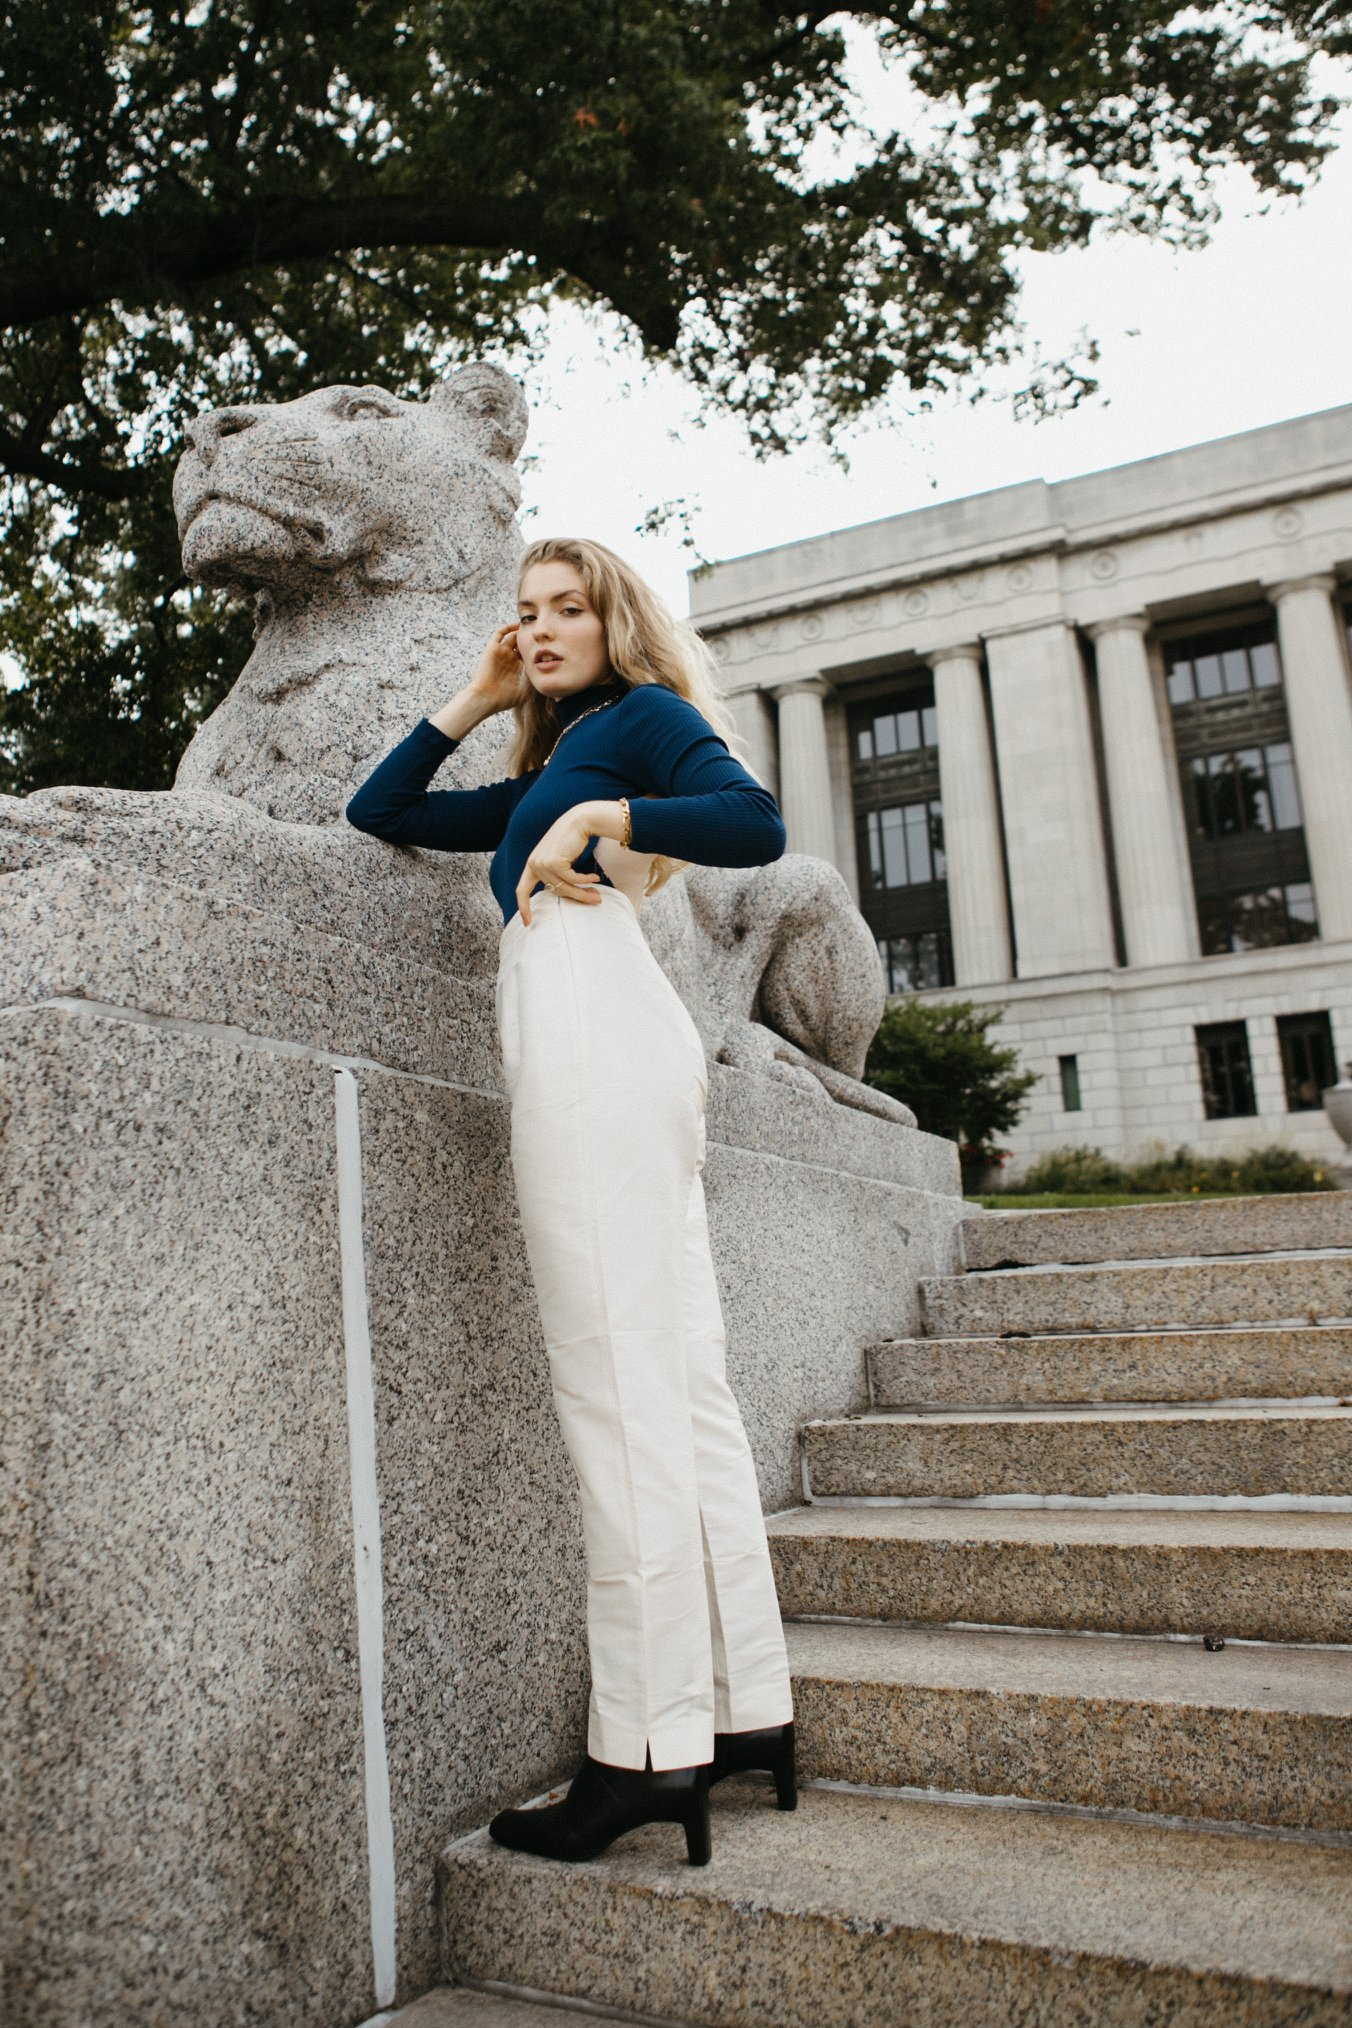 kansas city model martha sustainable fashion thrifted repurposed editorial paige muller sights and souls